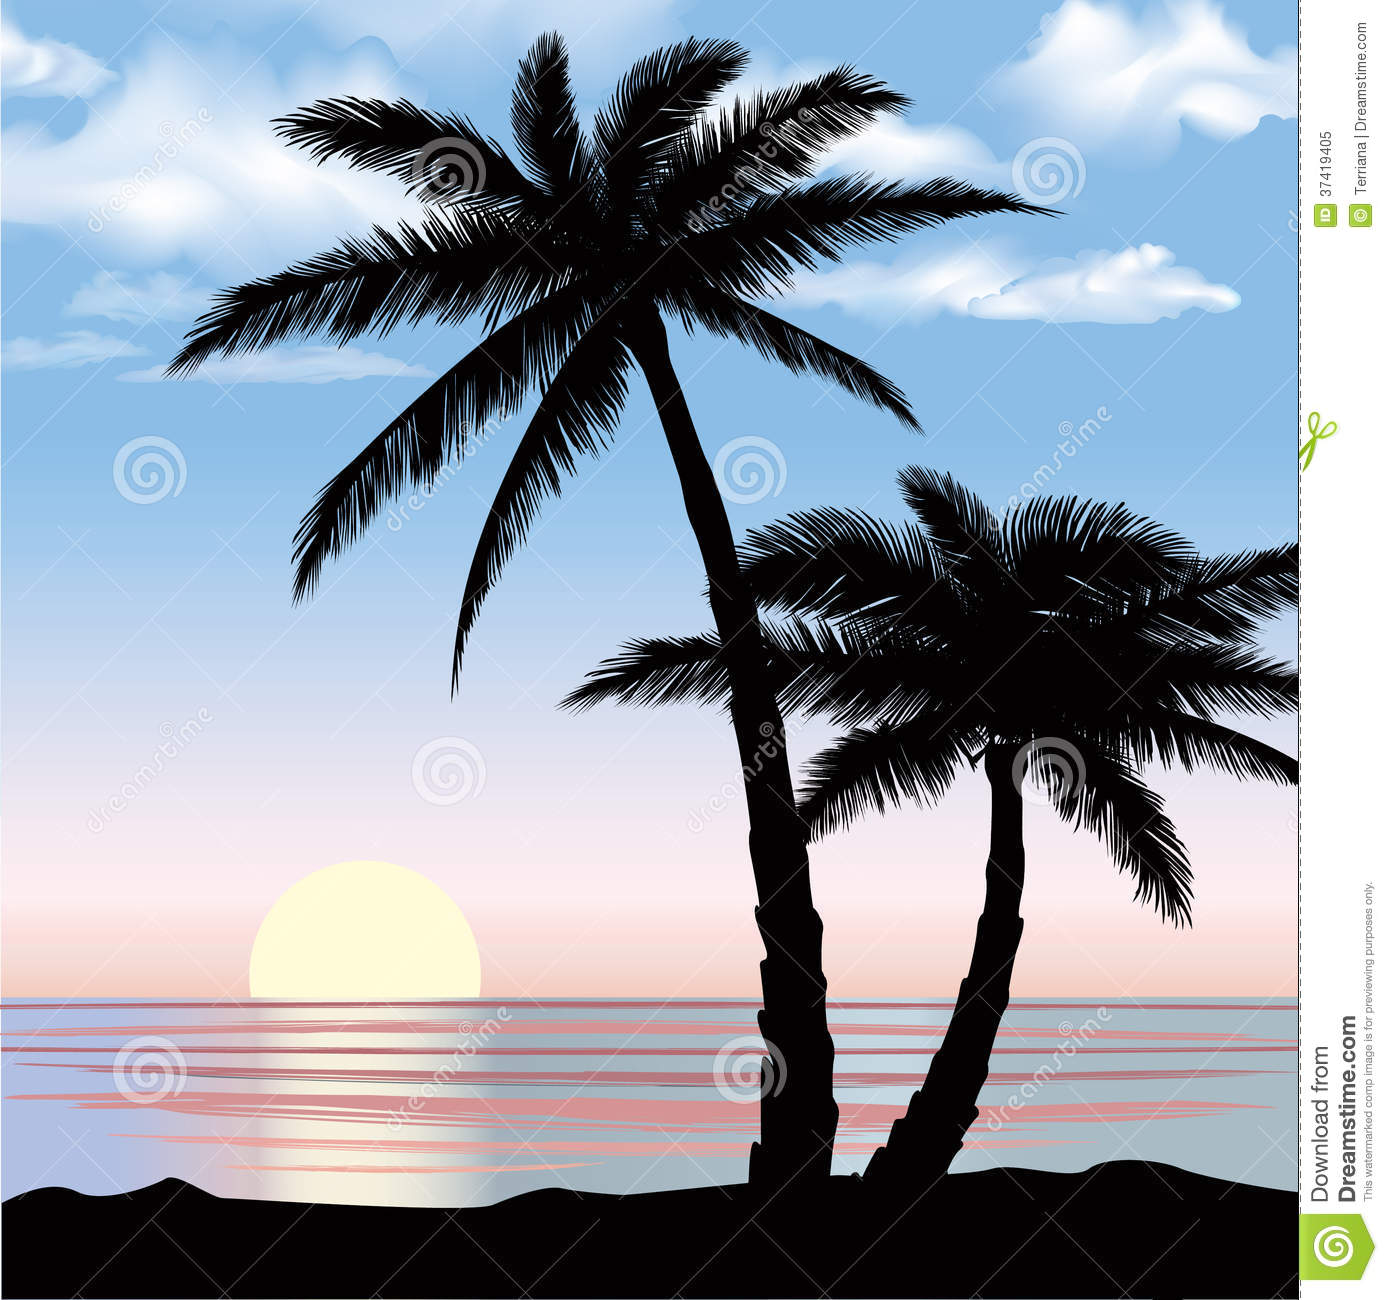 sunset view beach resort with palm trees wallpaper. royalty free